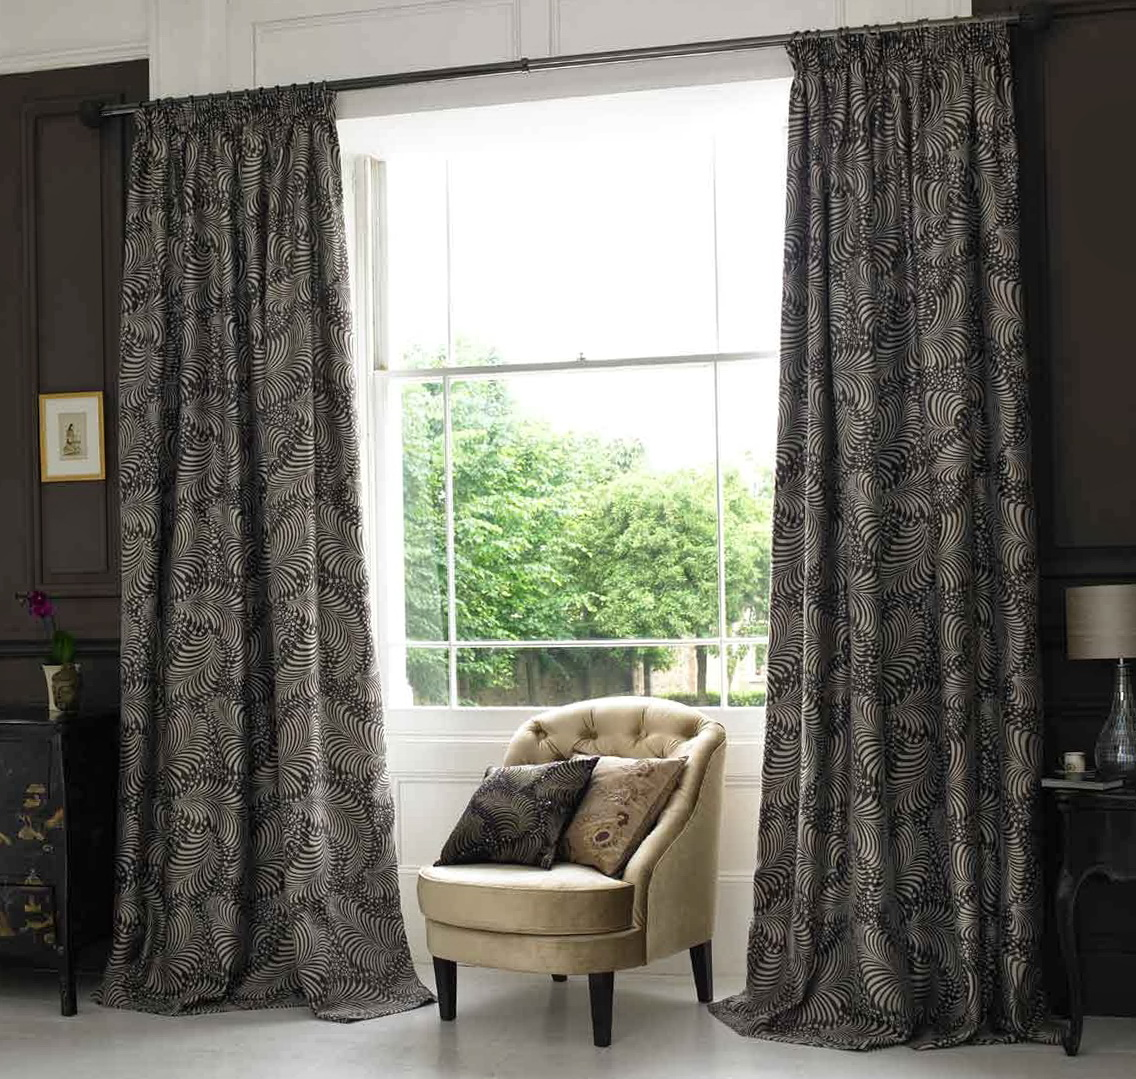 small living room curtain ideas small living room curtain ideas home design ideas 22296